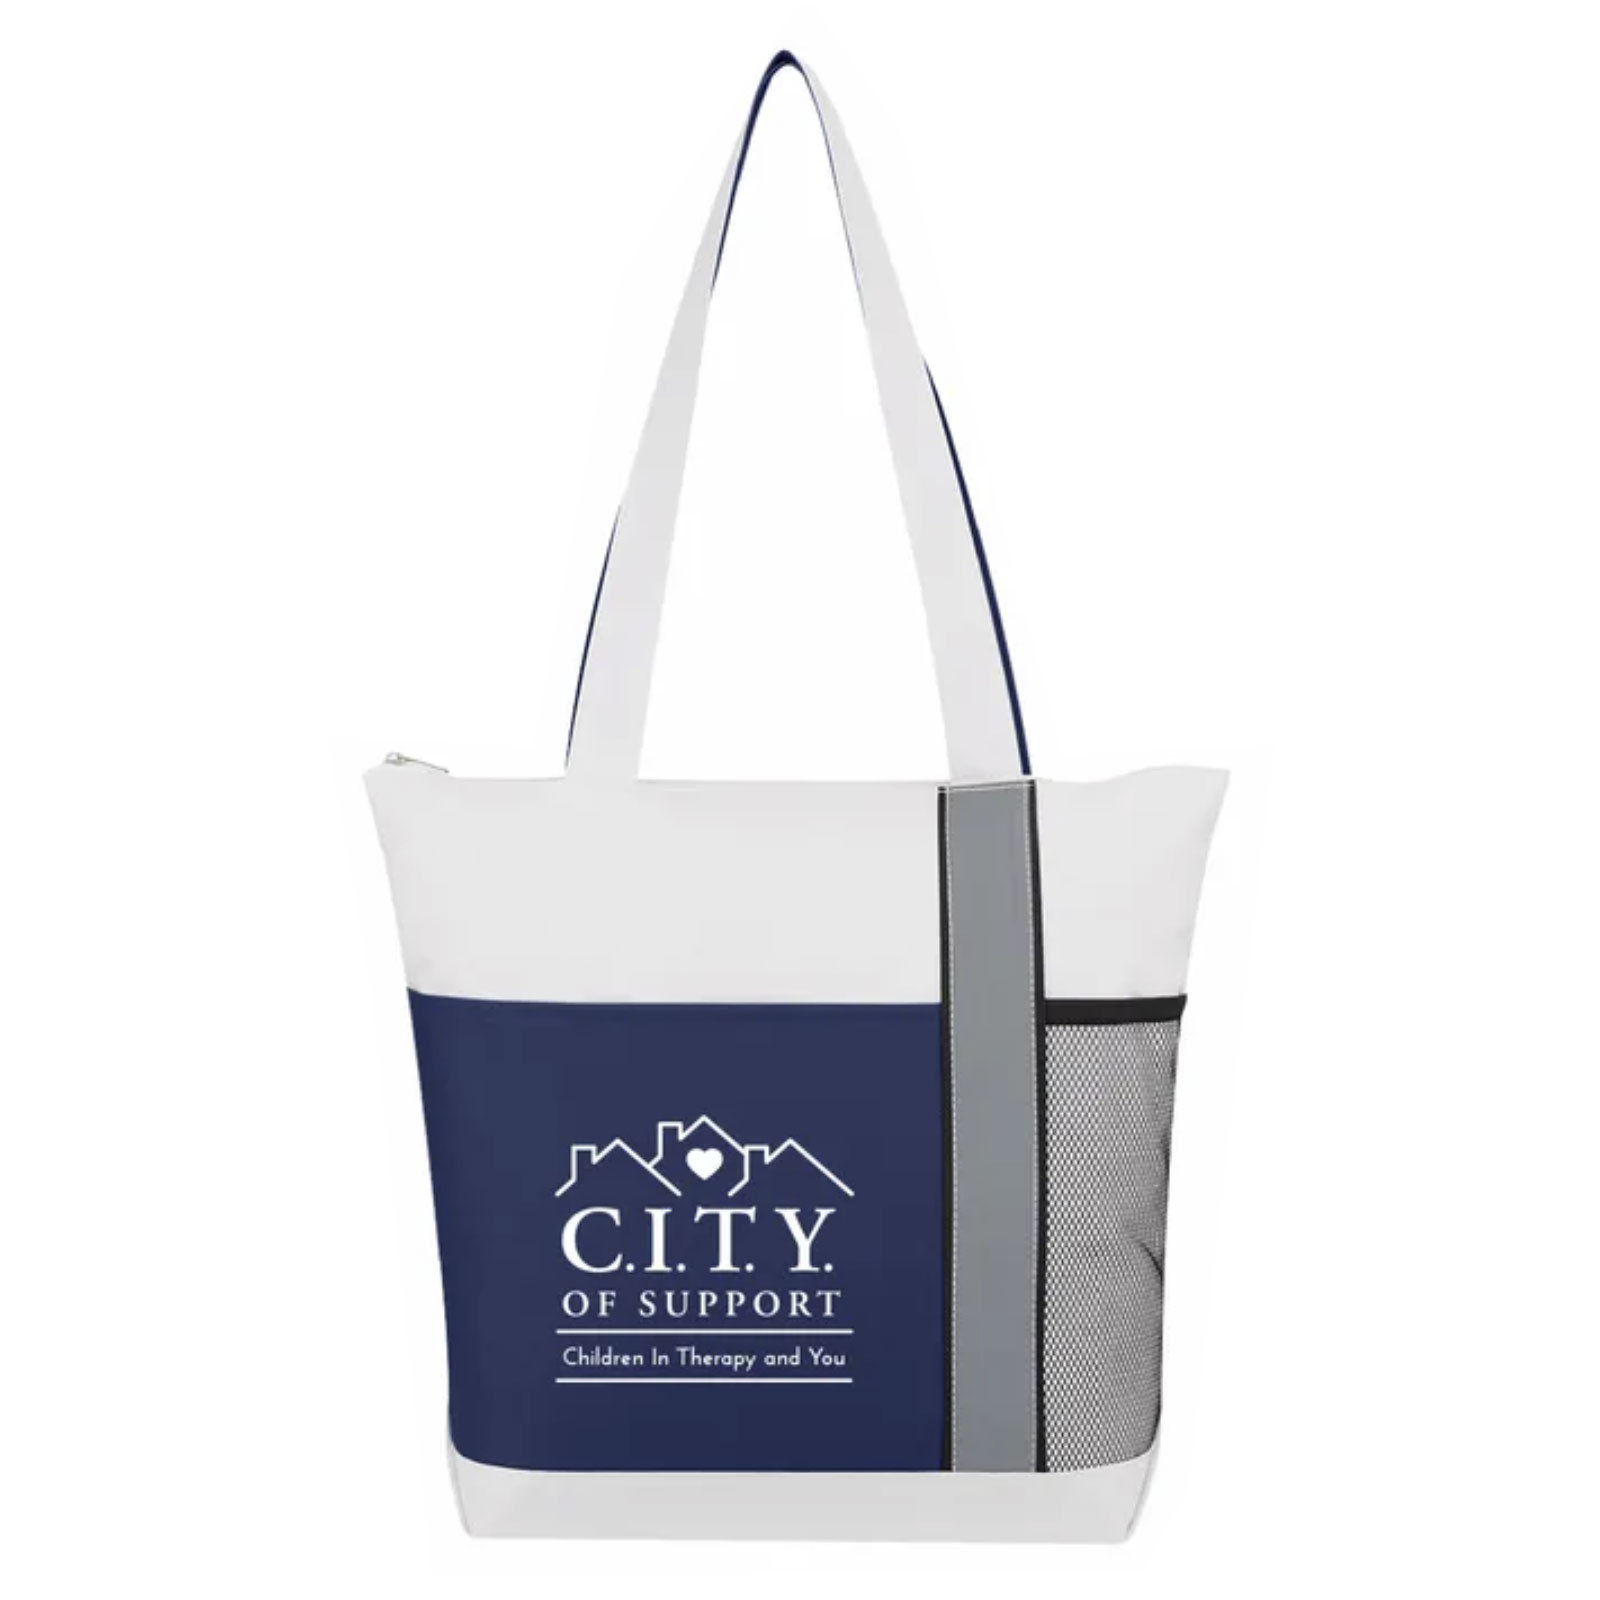 C.I.T.Y. Zippered Tote Bag